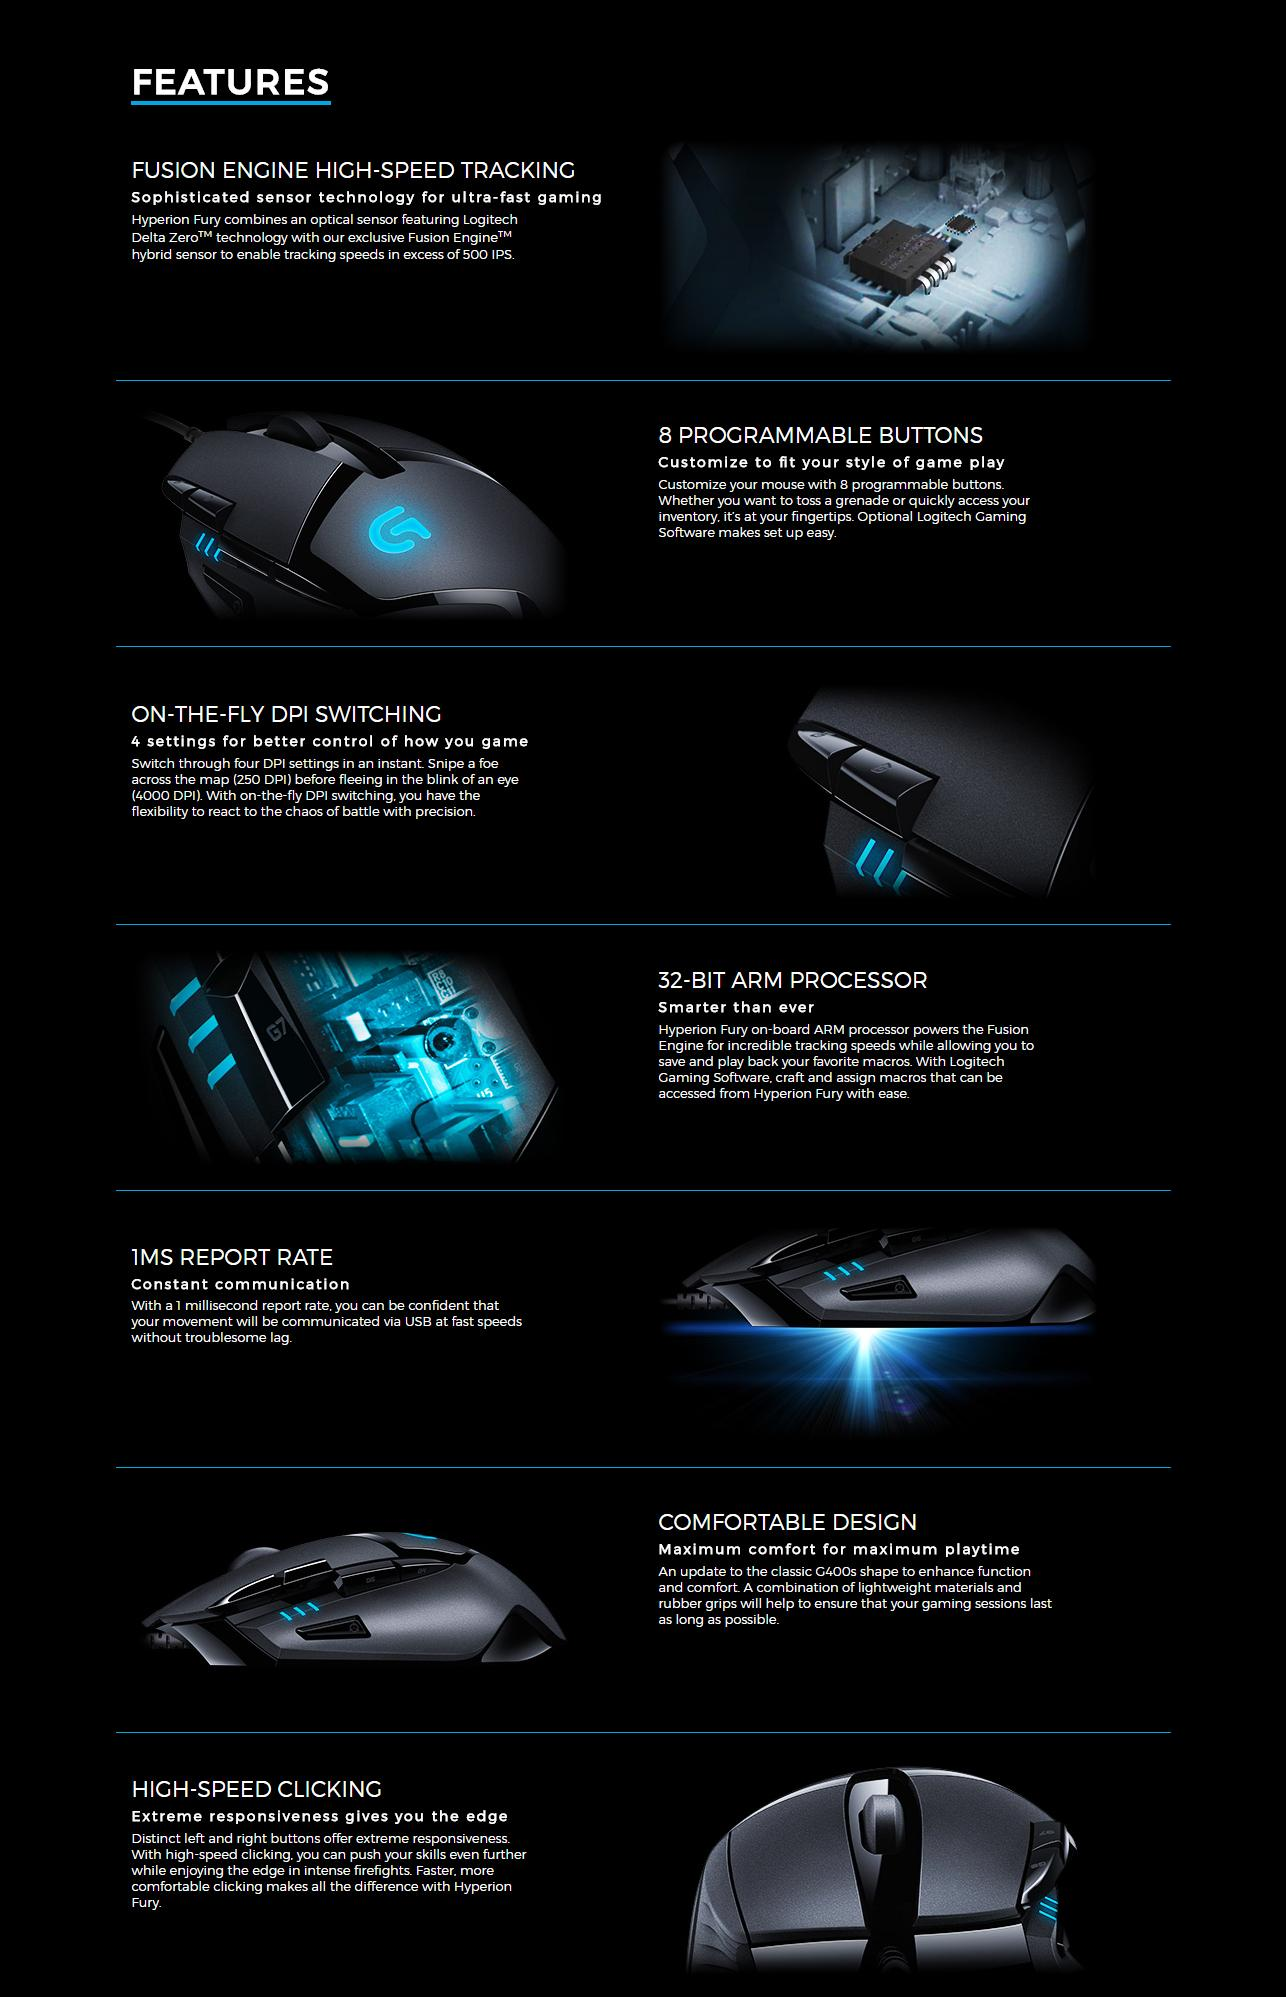 9a83efe7853 Specifications of Logitech G402 Hyperion Fury Ultra-Fast FPS Gaming Mouse